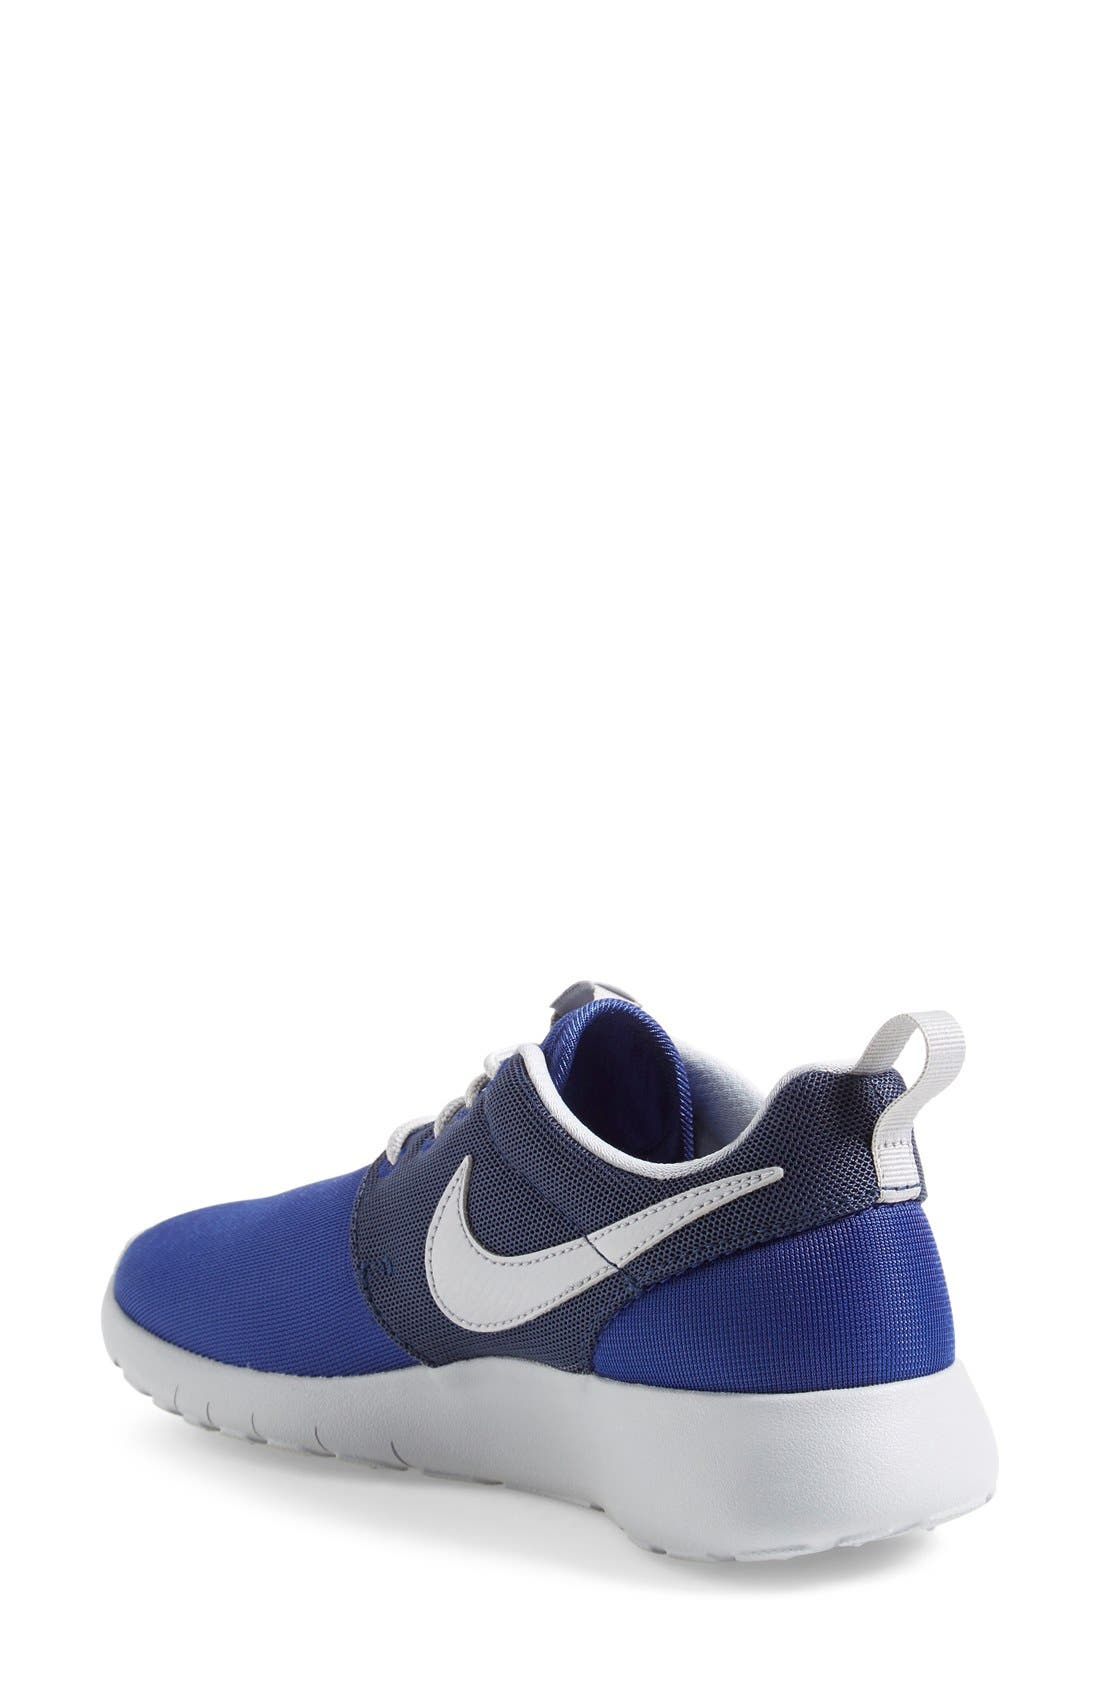 'Roshe Run' Sneaker,                             Alternate thumbnail 88, color,